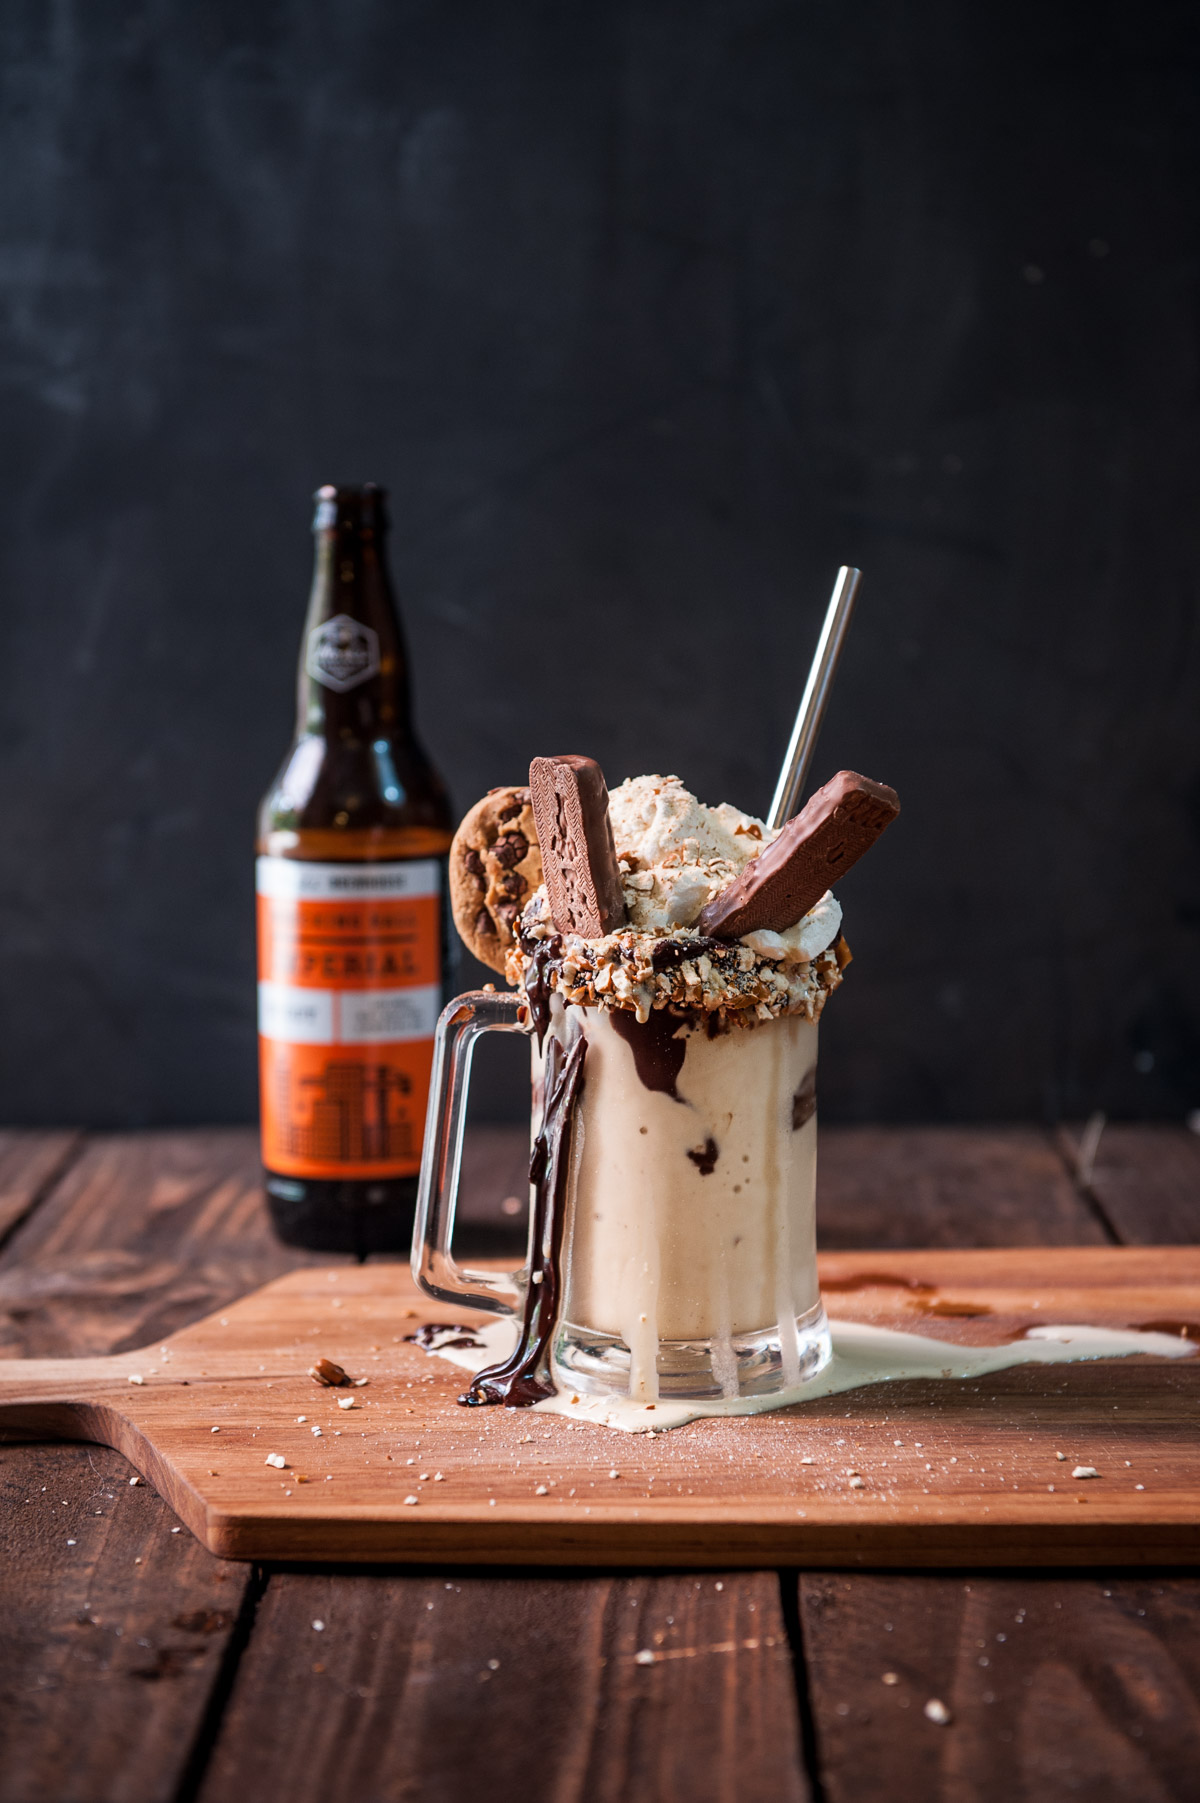 Chocolate Stout Freak Shake - The Beeroness